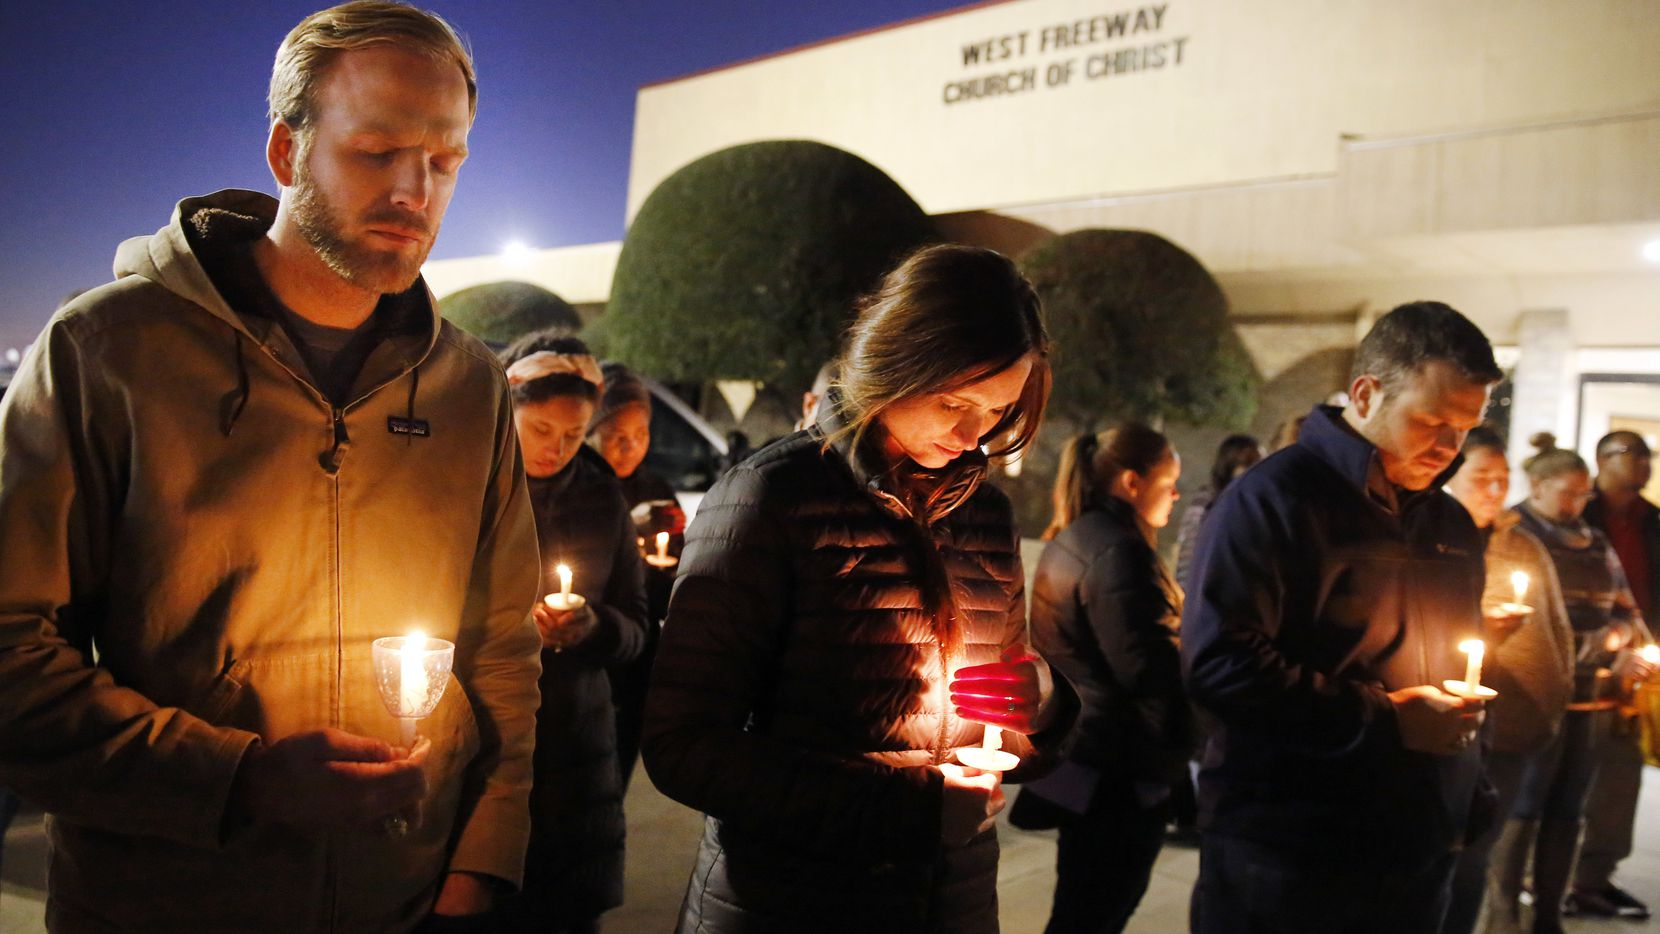 Church and community members, including Matt Pacholczyk (left) and his wife, Faith Pacholczyk, stand outside West Freeway Church of Christ for a candlelight vigil Monday.